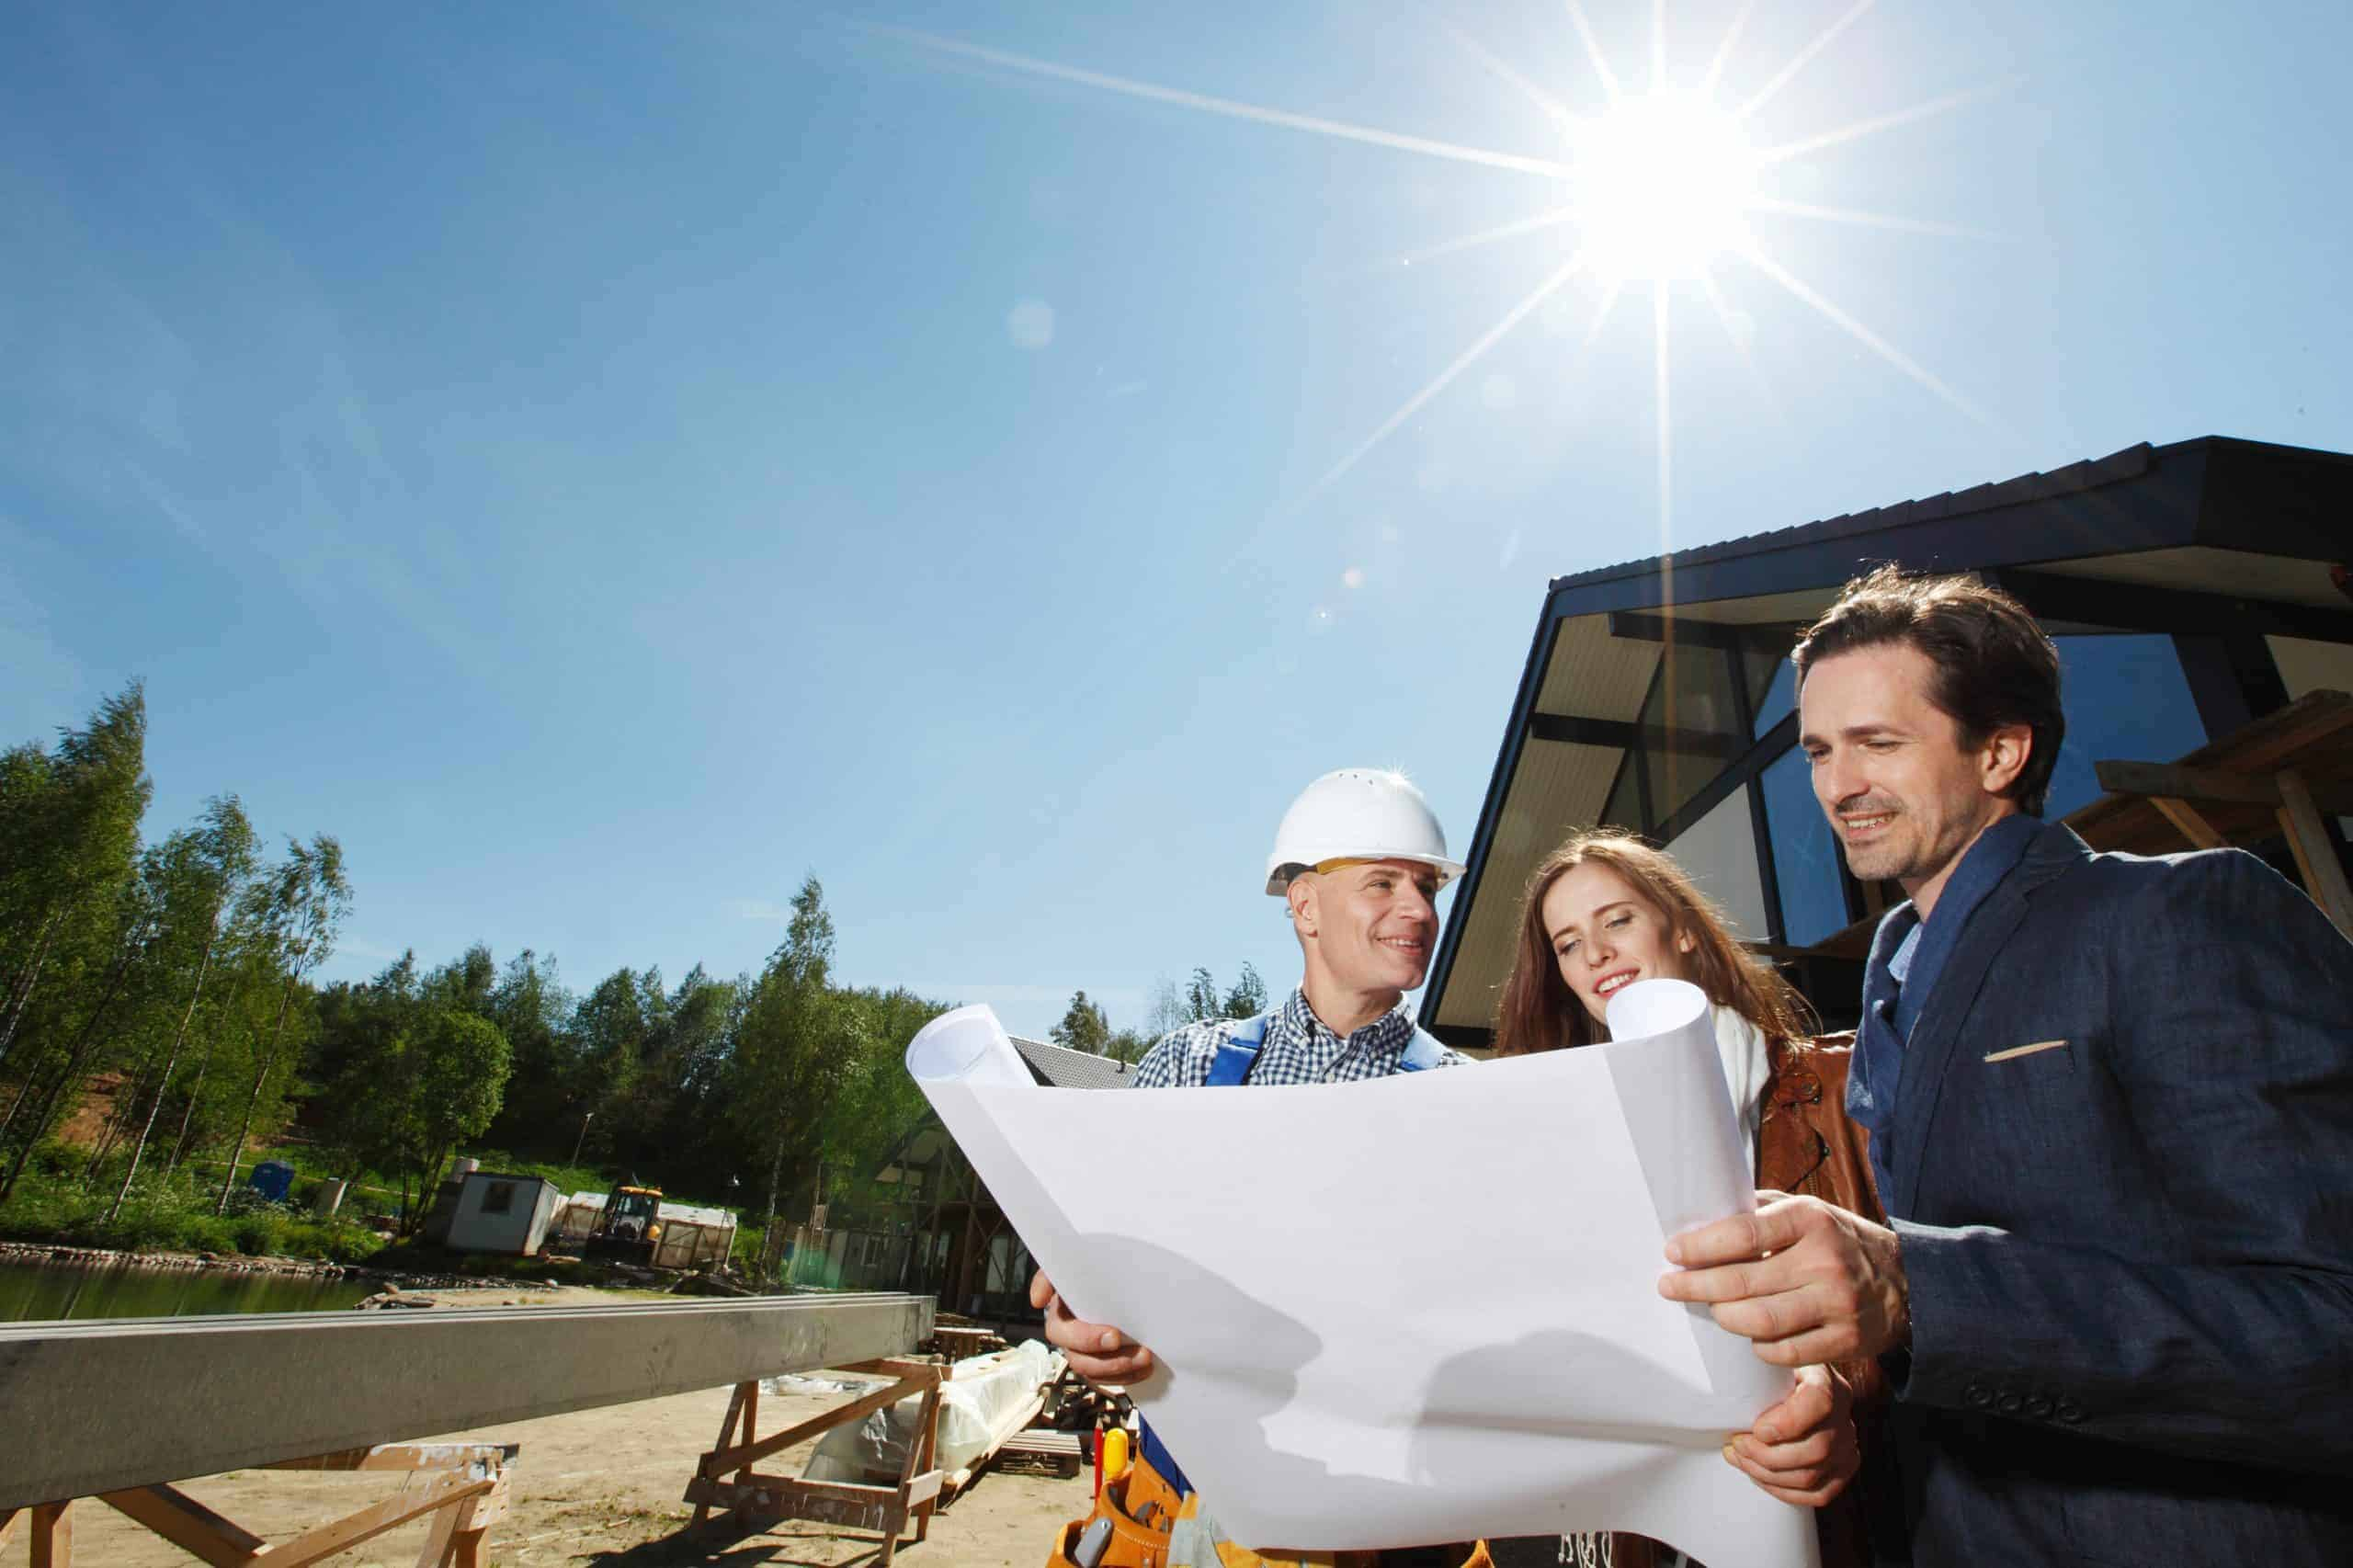 6 Construction and Lifestyle Trends Set to Take Over in 2021